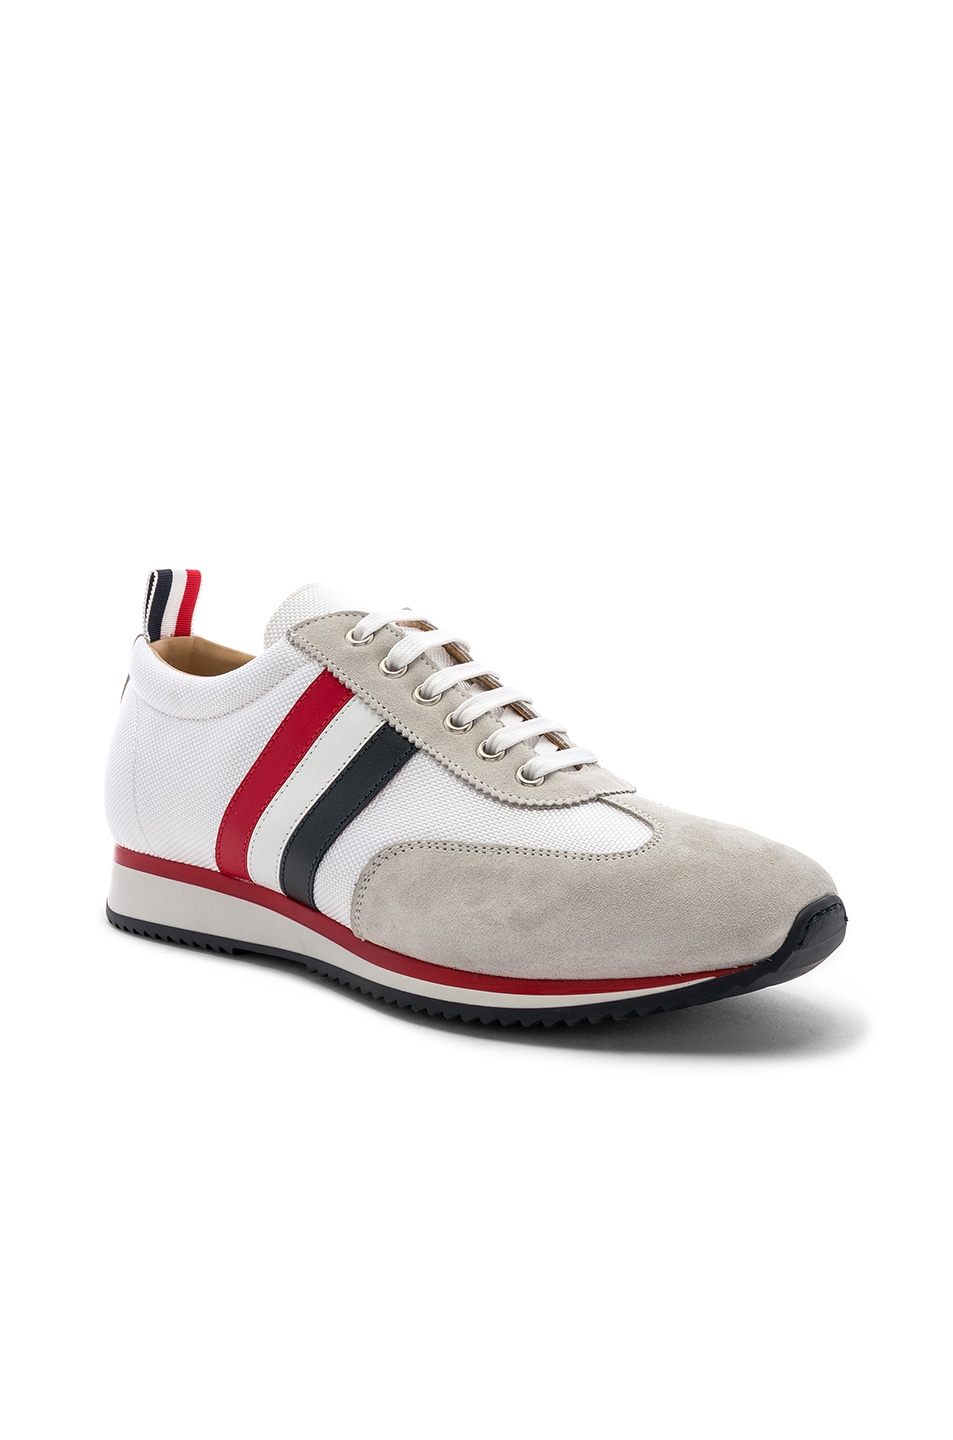 Image 1 of Thom Browne Running Shoe in White